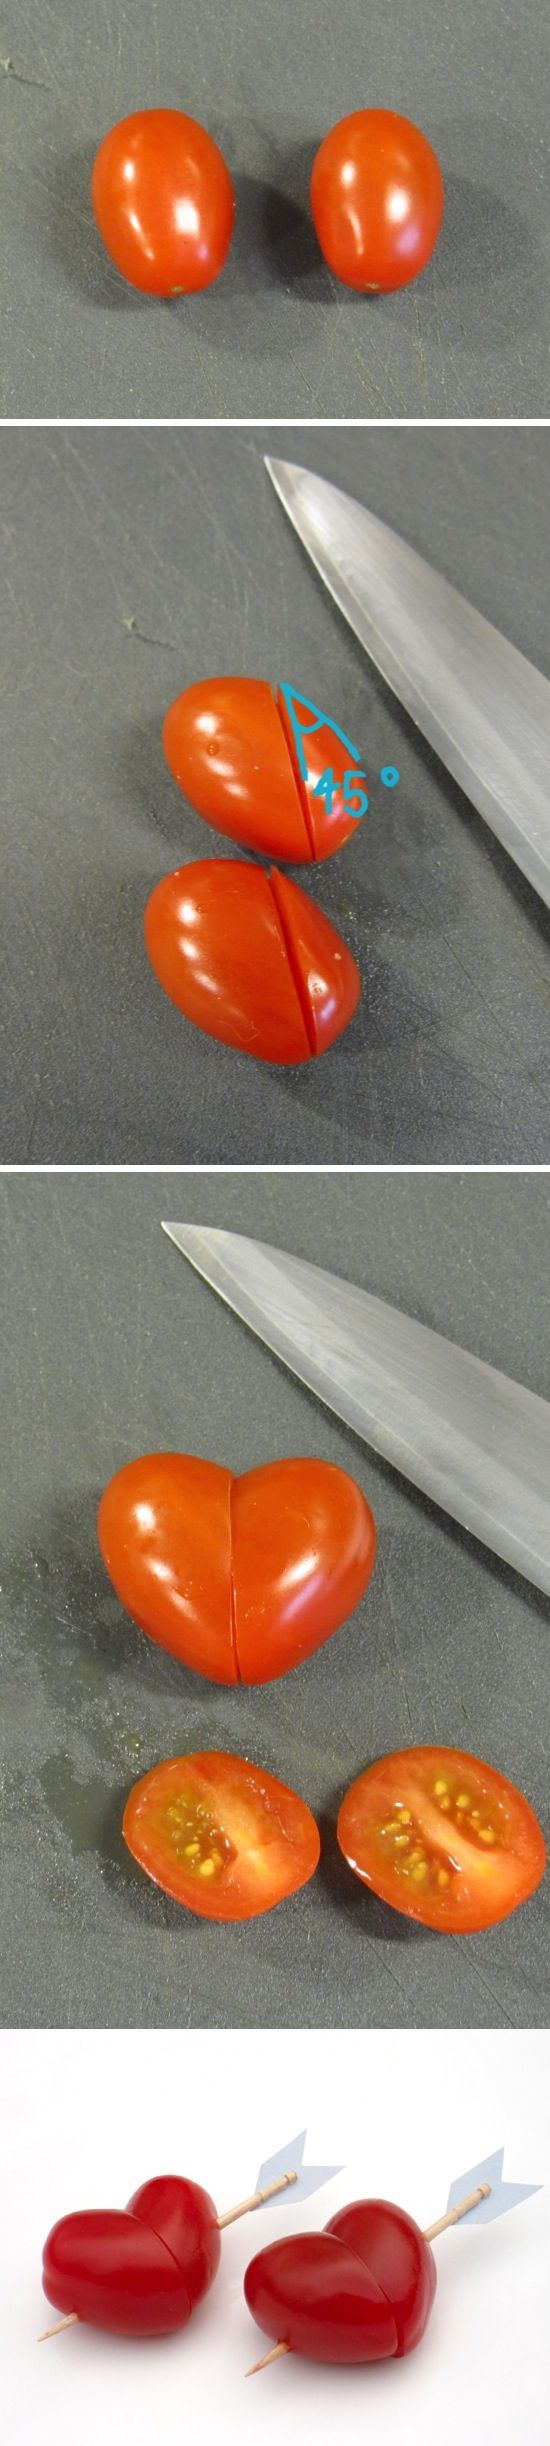 Heart Shaped Cherry Tomatoes. Use a toothpick to resemble cupid's arrow. Cute addition to a veggie tray!